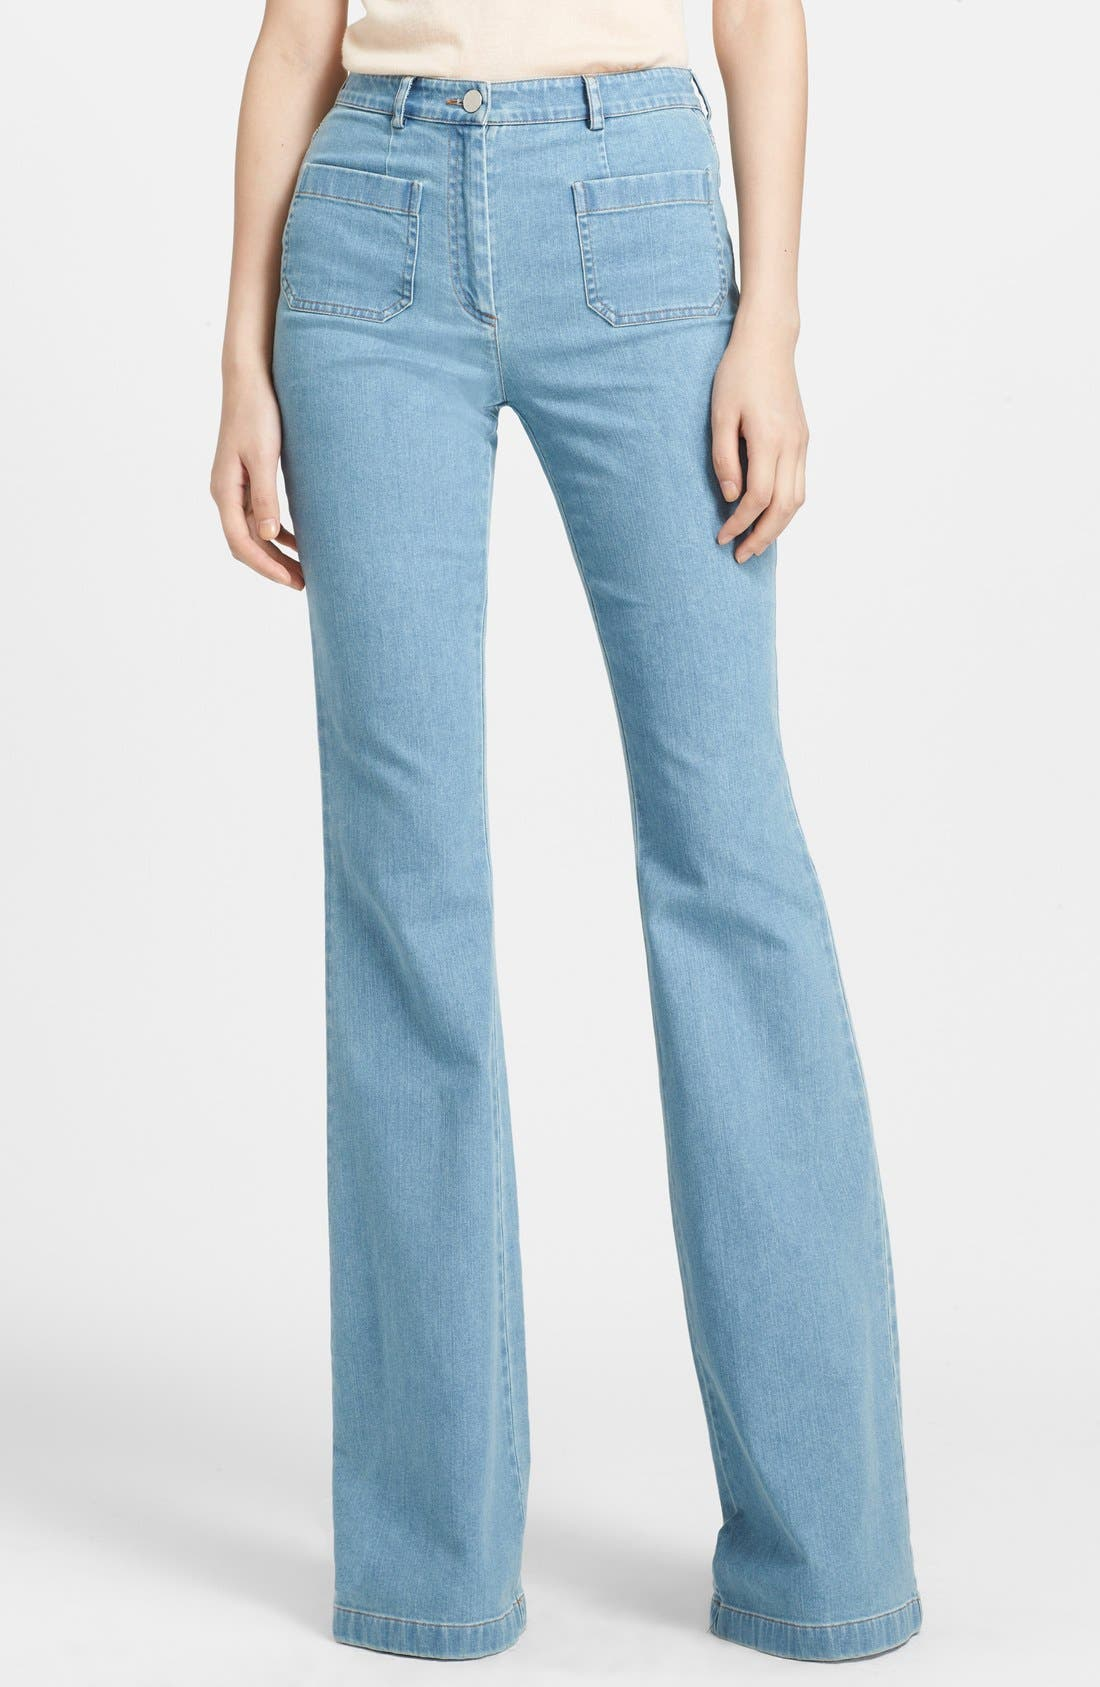 Alternate Image 1 Selected - Michael Kors Bell Bottom Stretch Jeans